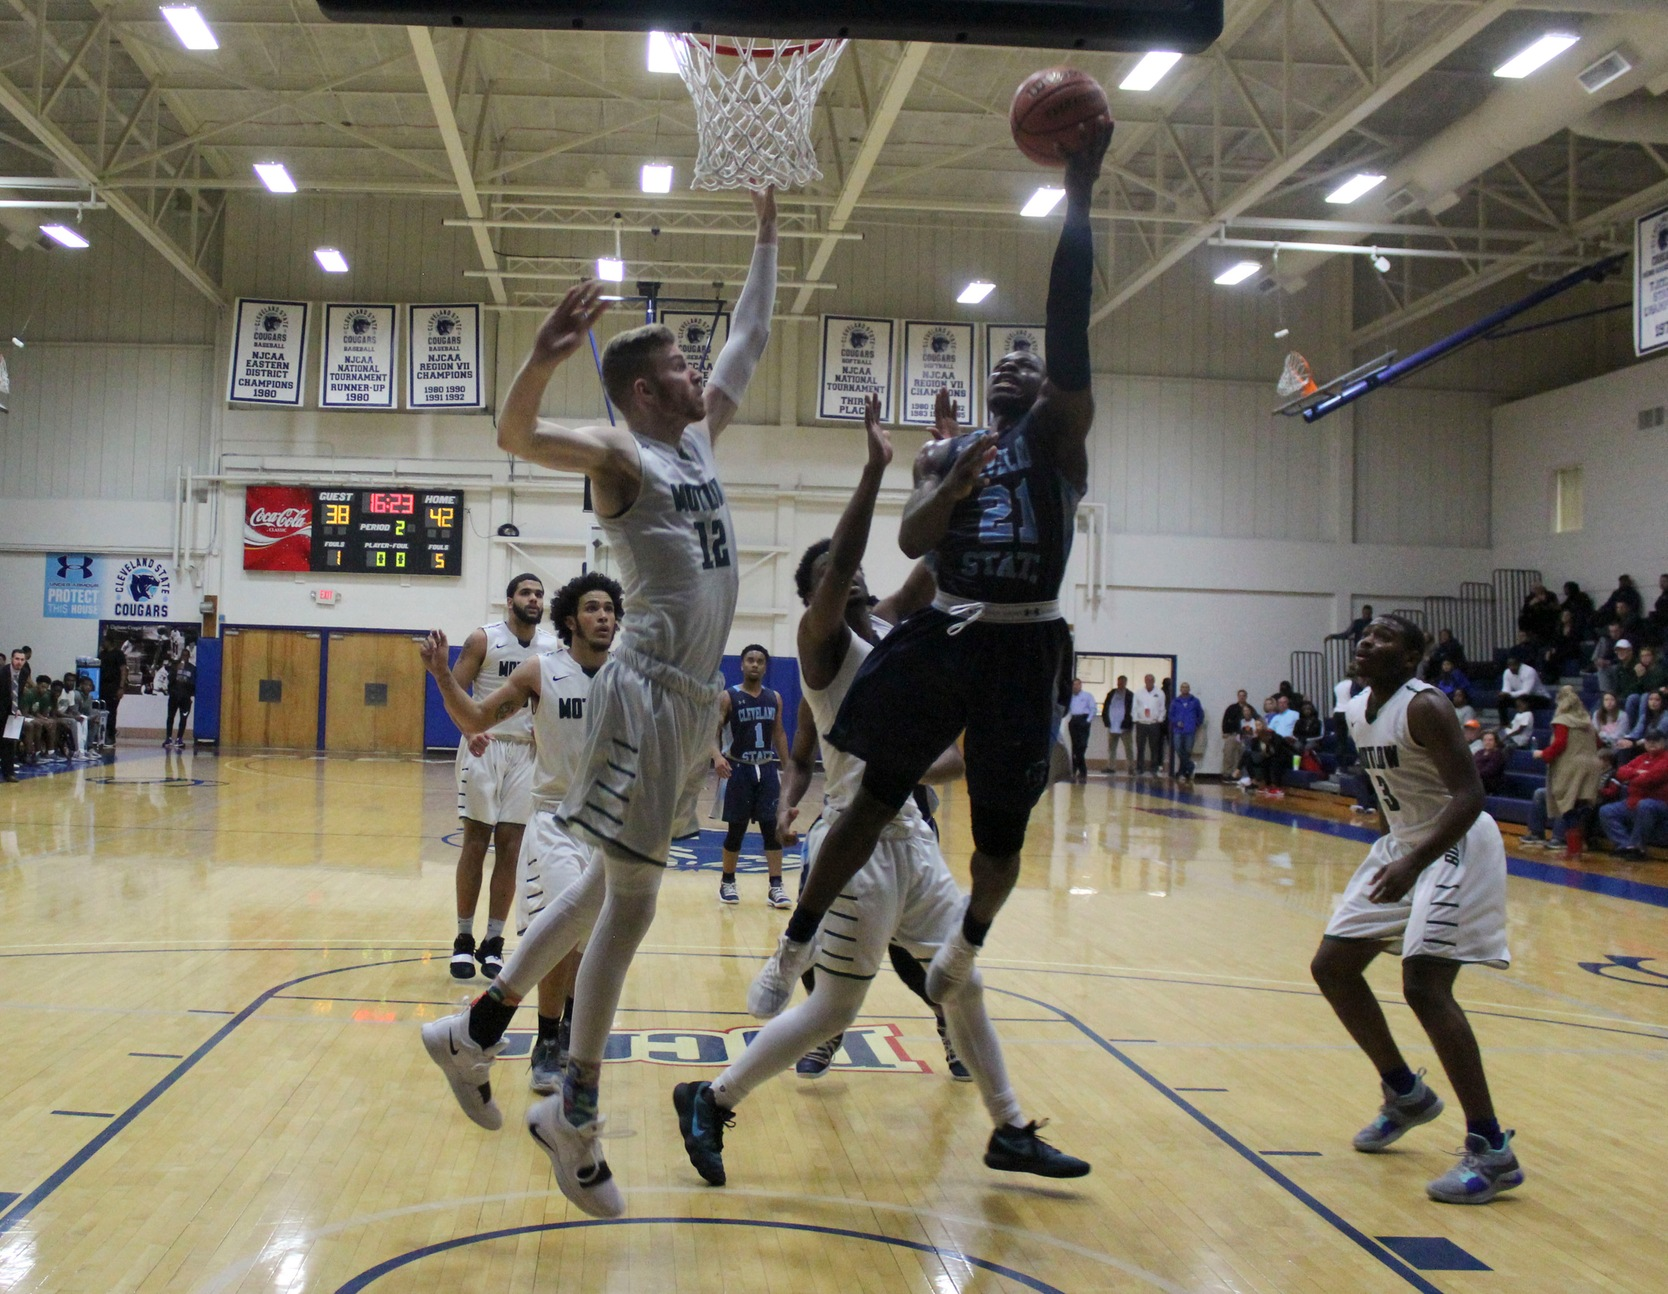 Cougars Upsets #2 Motlow State in Quarterfinals